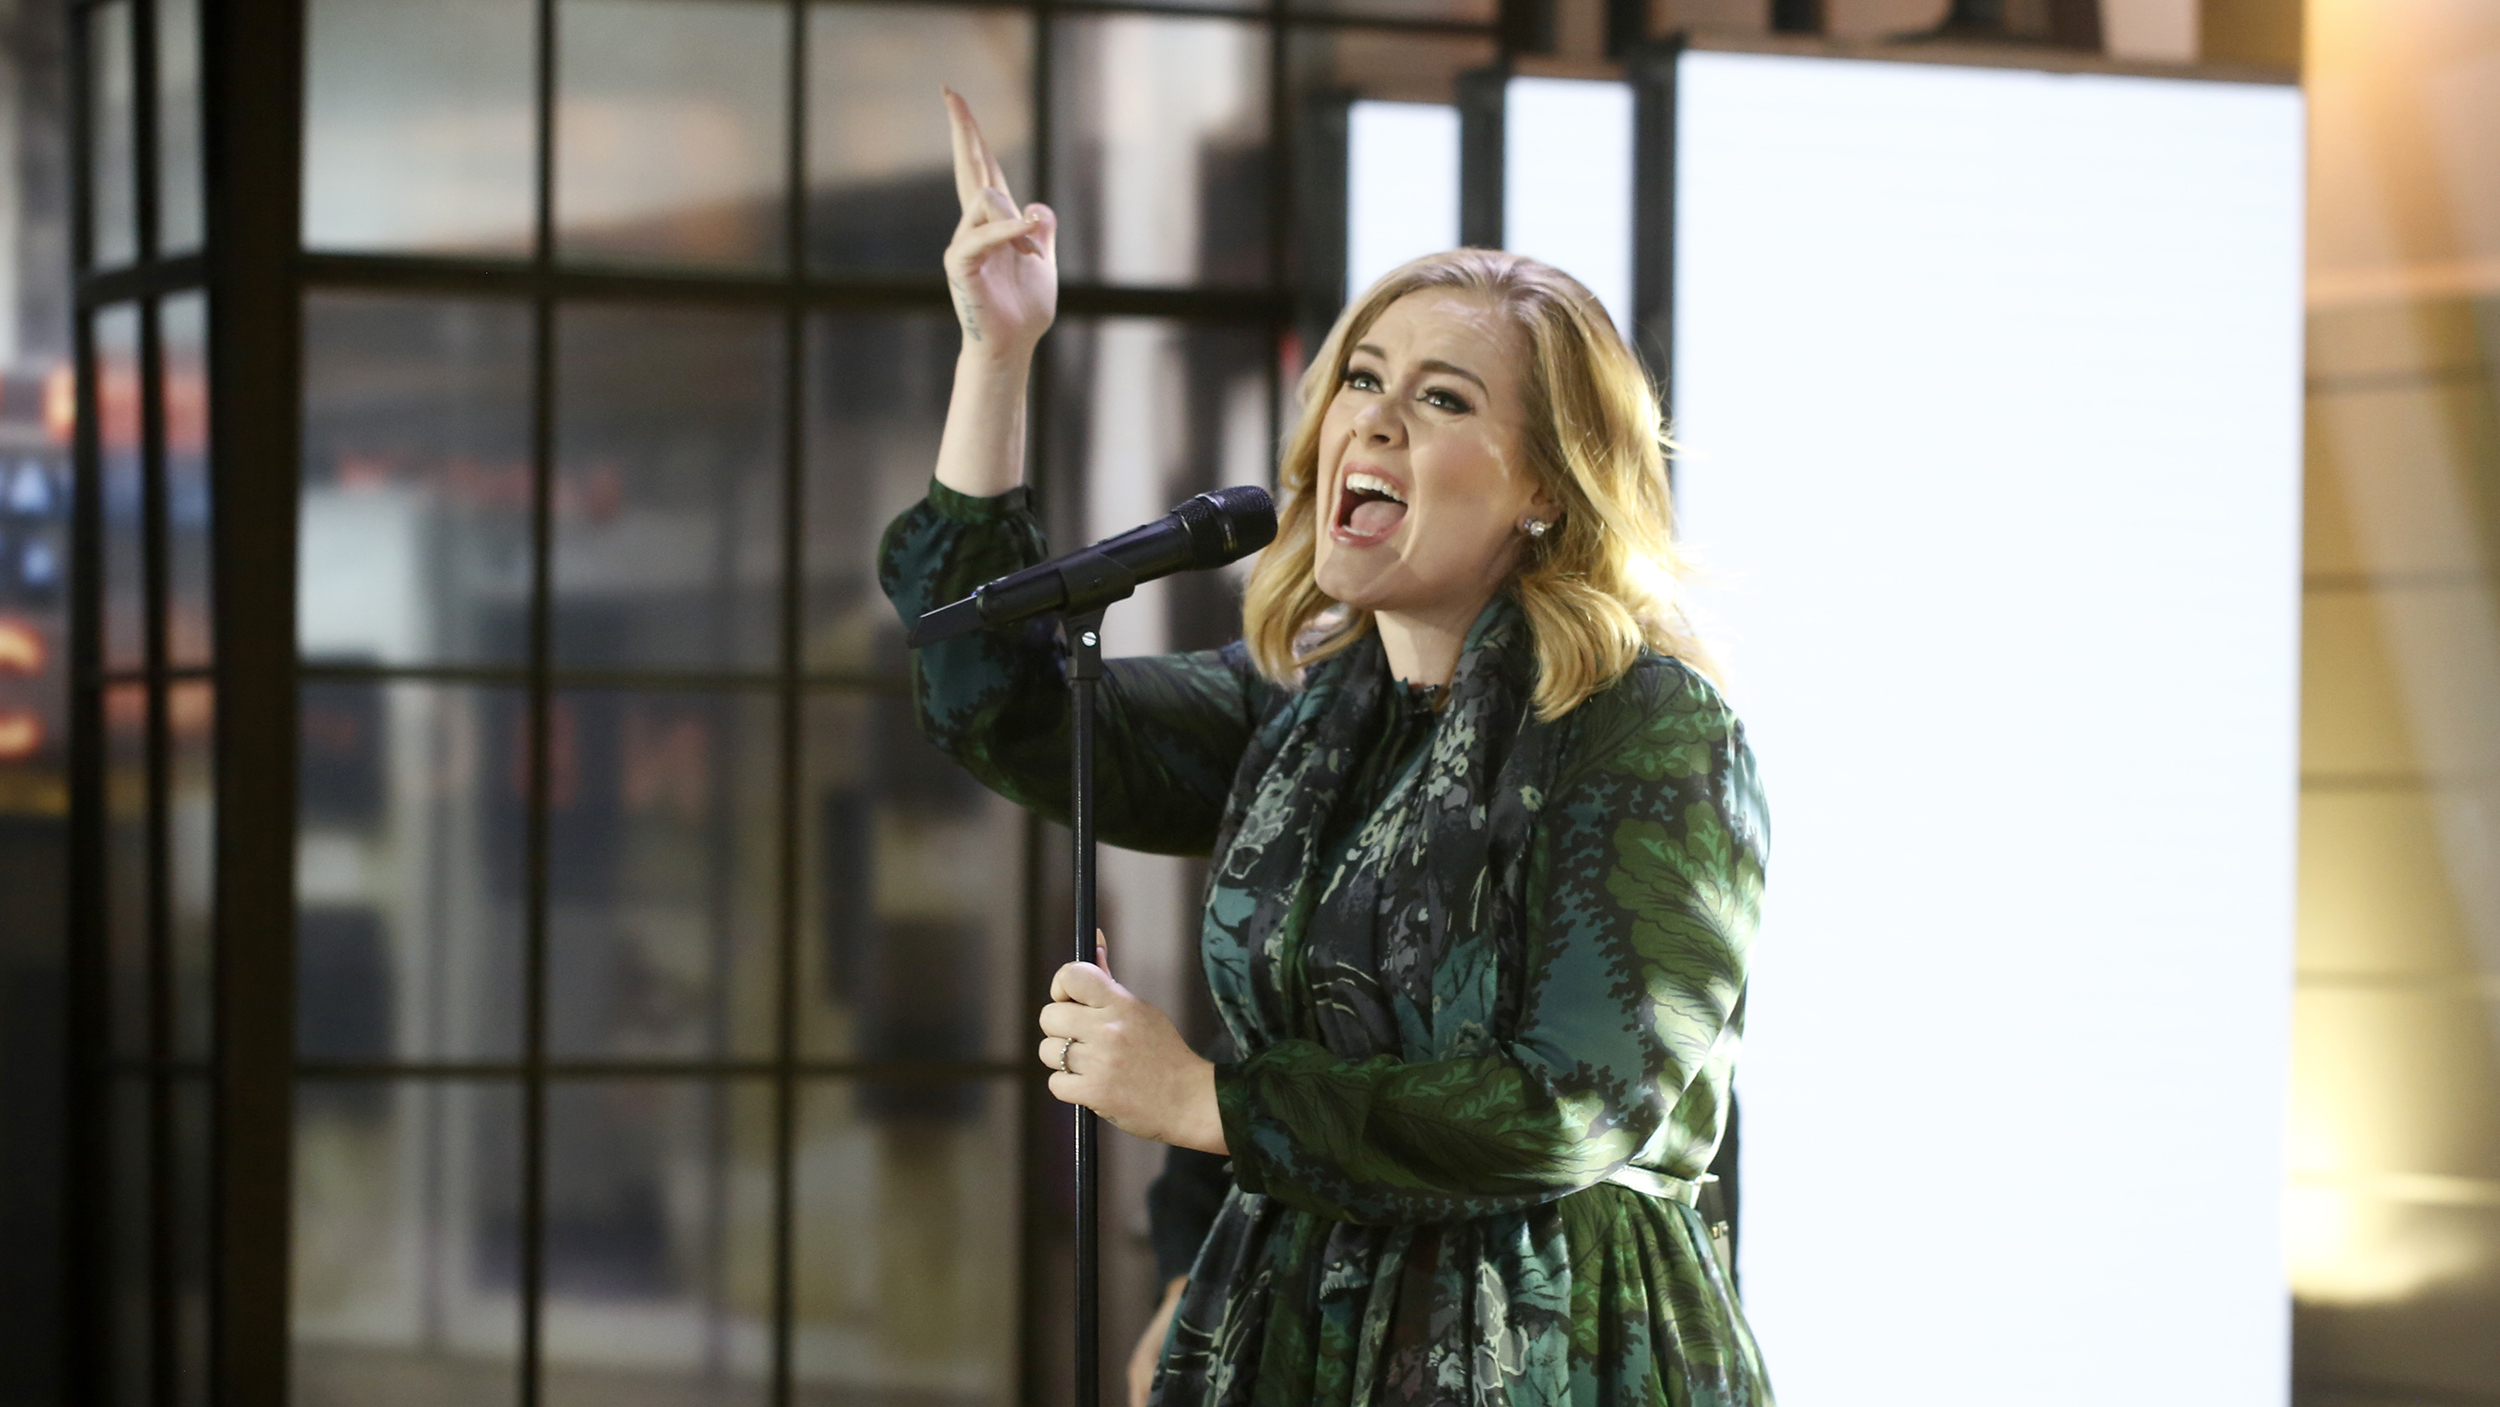 Adele Performs 'Million Years Ago' On TODAY Show, Talks